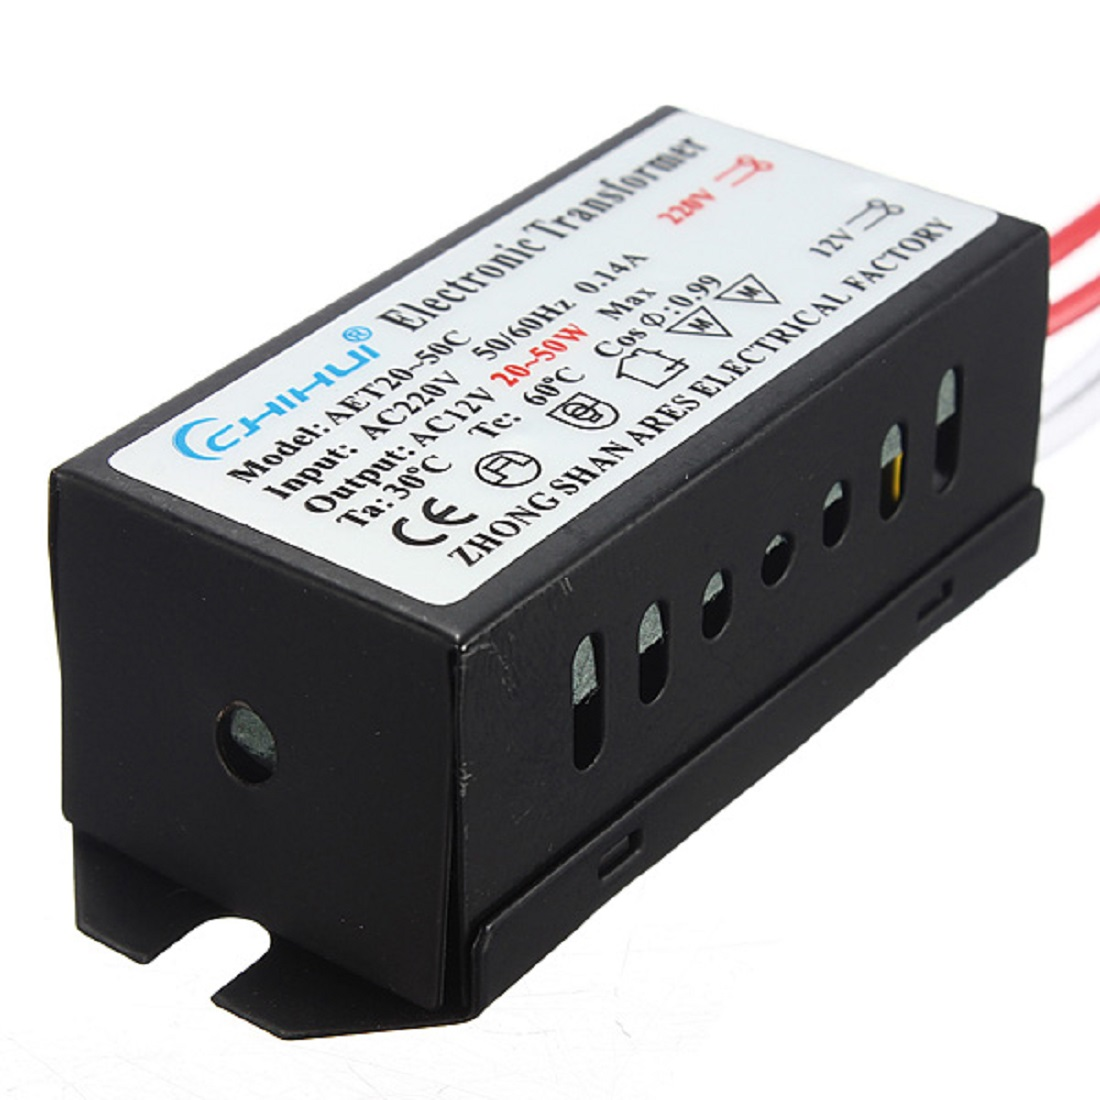 50w Led Power Supply: AC 12V 20-50W Power Supply Driver Electronic Transformer